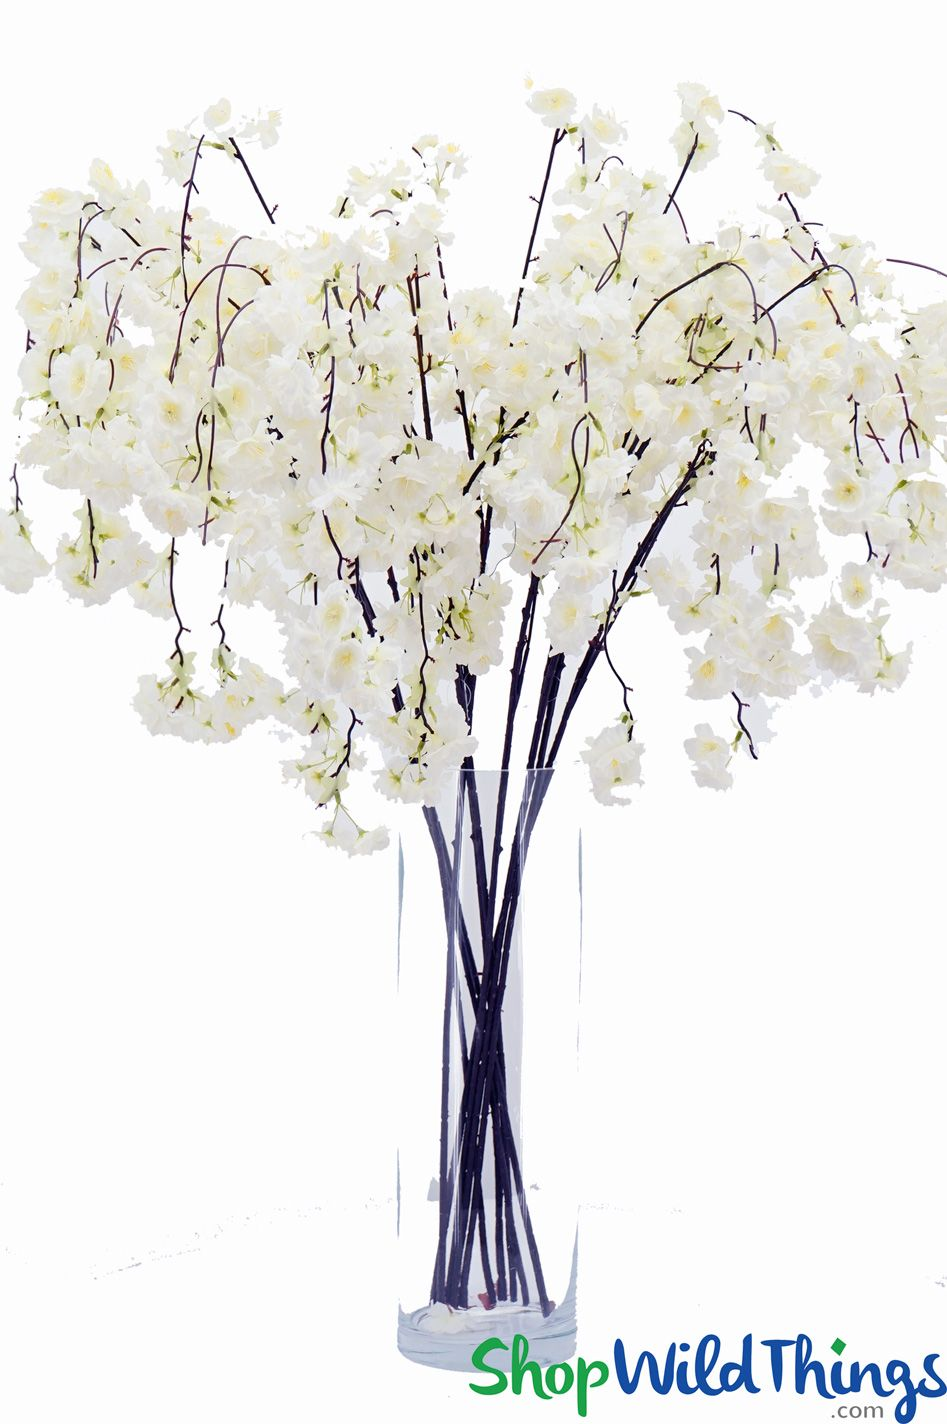 53 Long White Silk Cherry Blossom Branch Bendable Stems With Cascading Flowersideal For Black Ti Cherry Blossom Branch Silk Flowers Wedding Vase With Branches